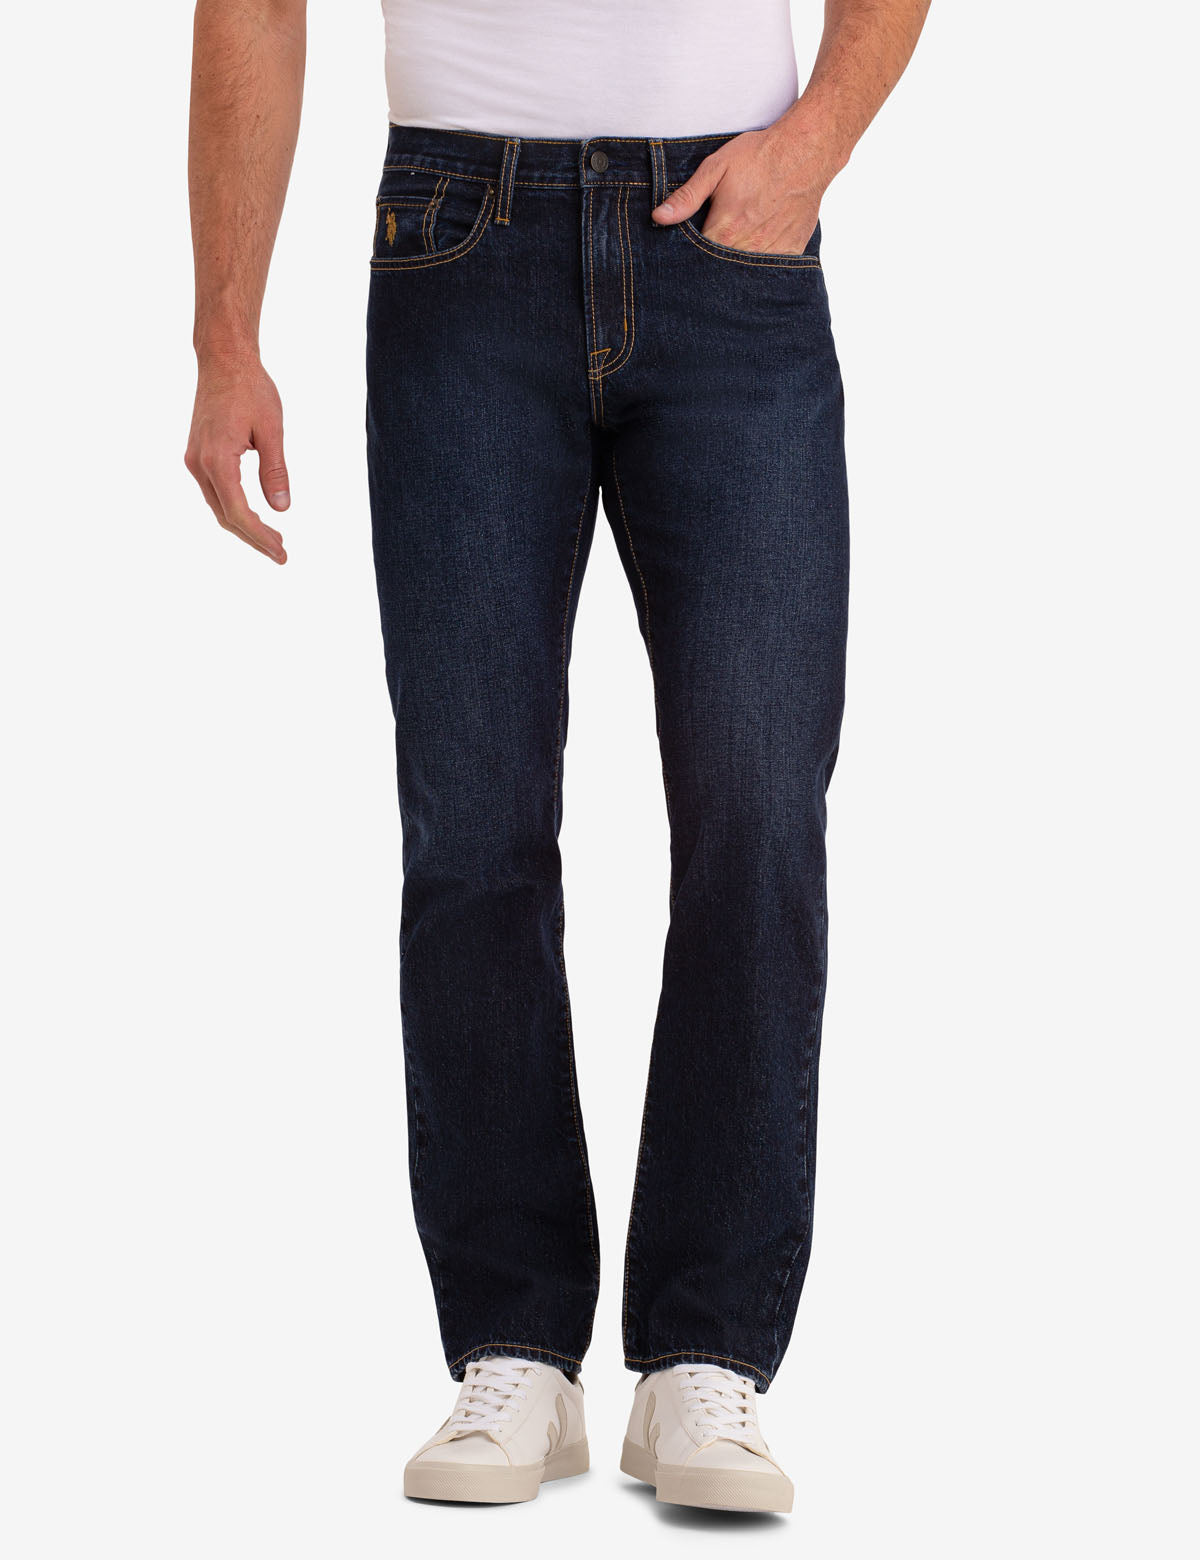 CLASSIC STRAIGHT FIT JEANS